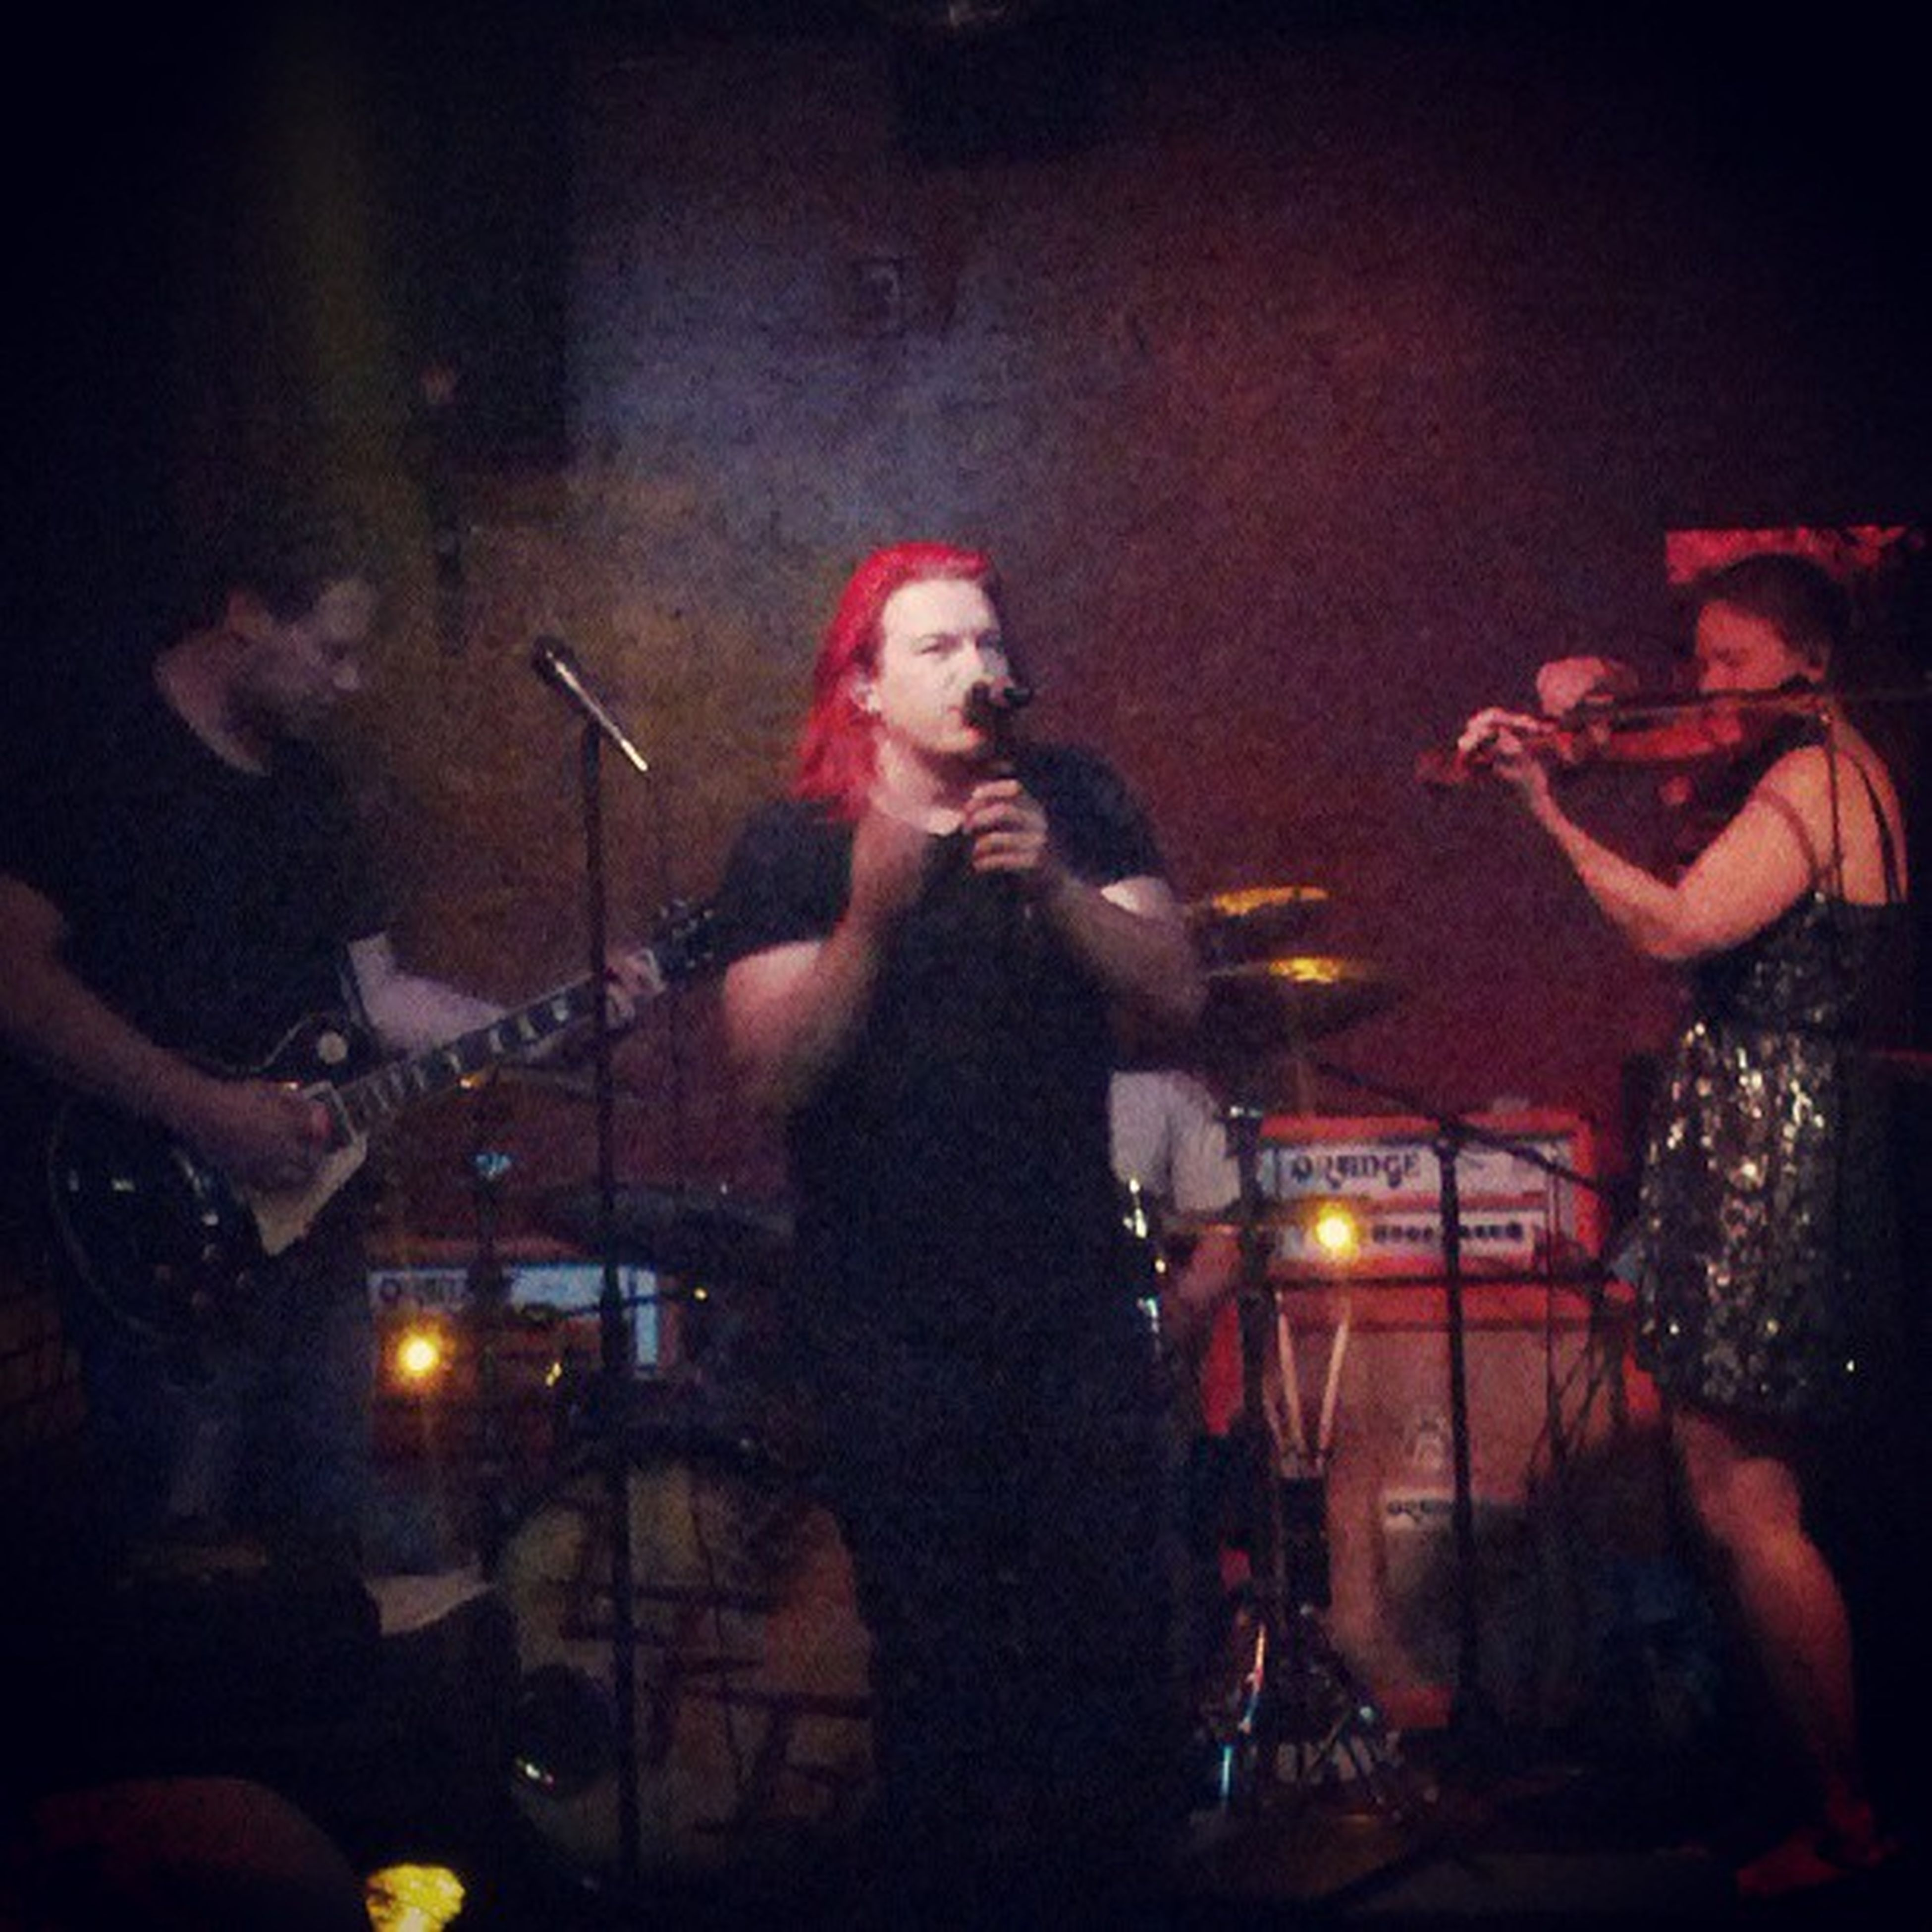 Left Foot Green live! So awesome! They are playing at the Whiskey AGoGo tonight (6/21/2013)!